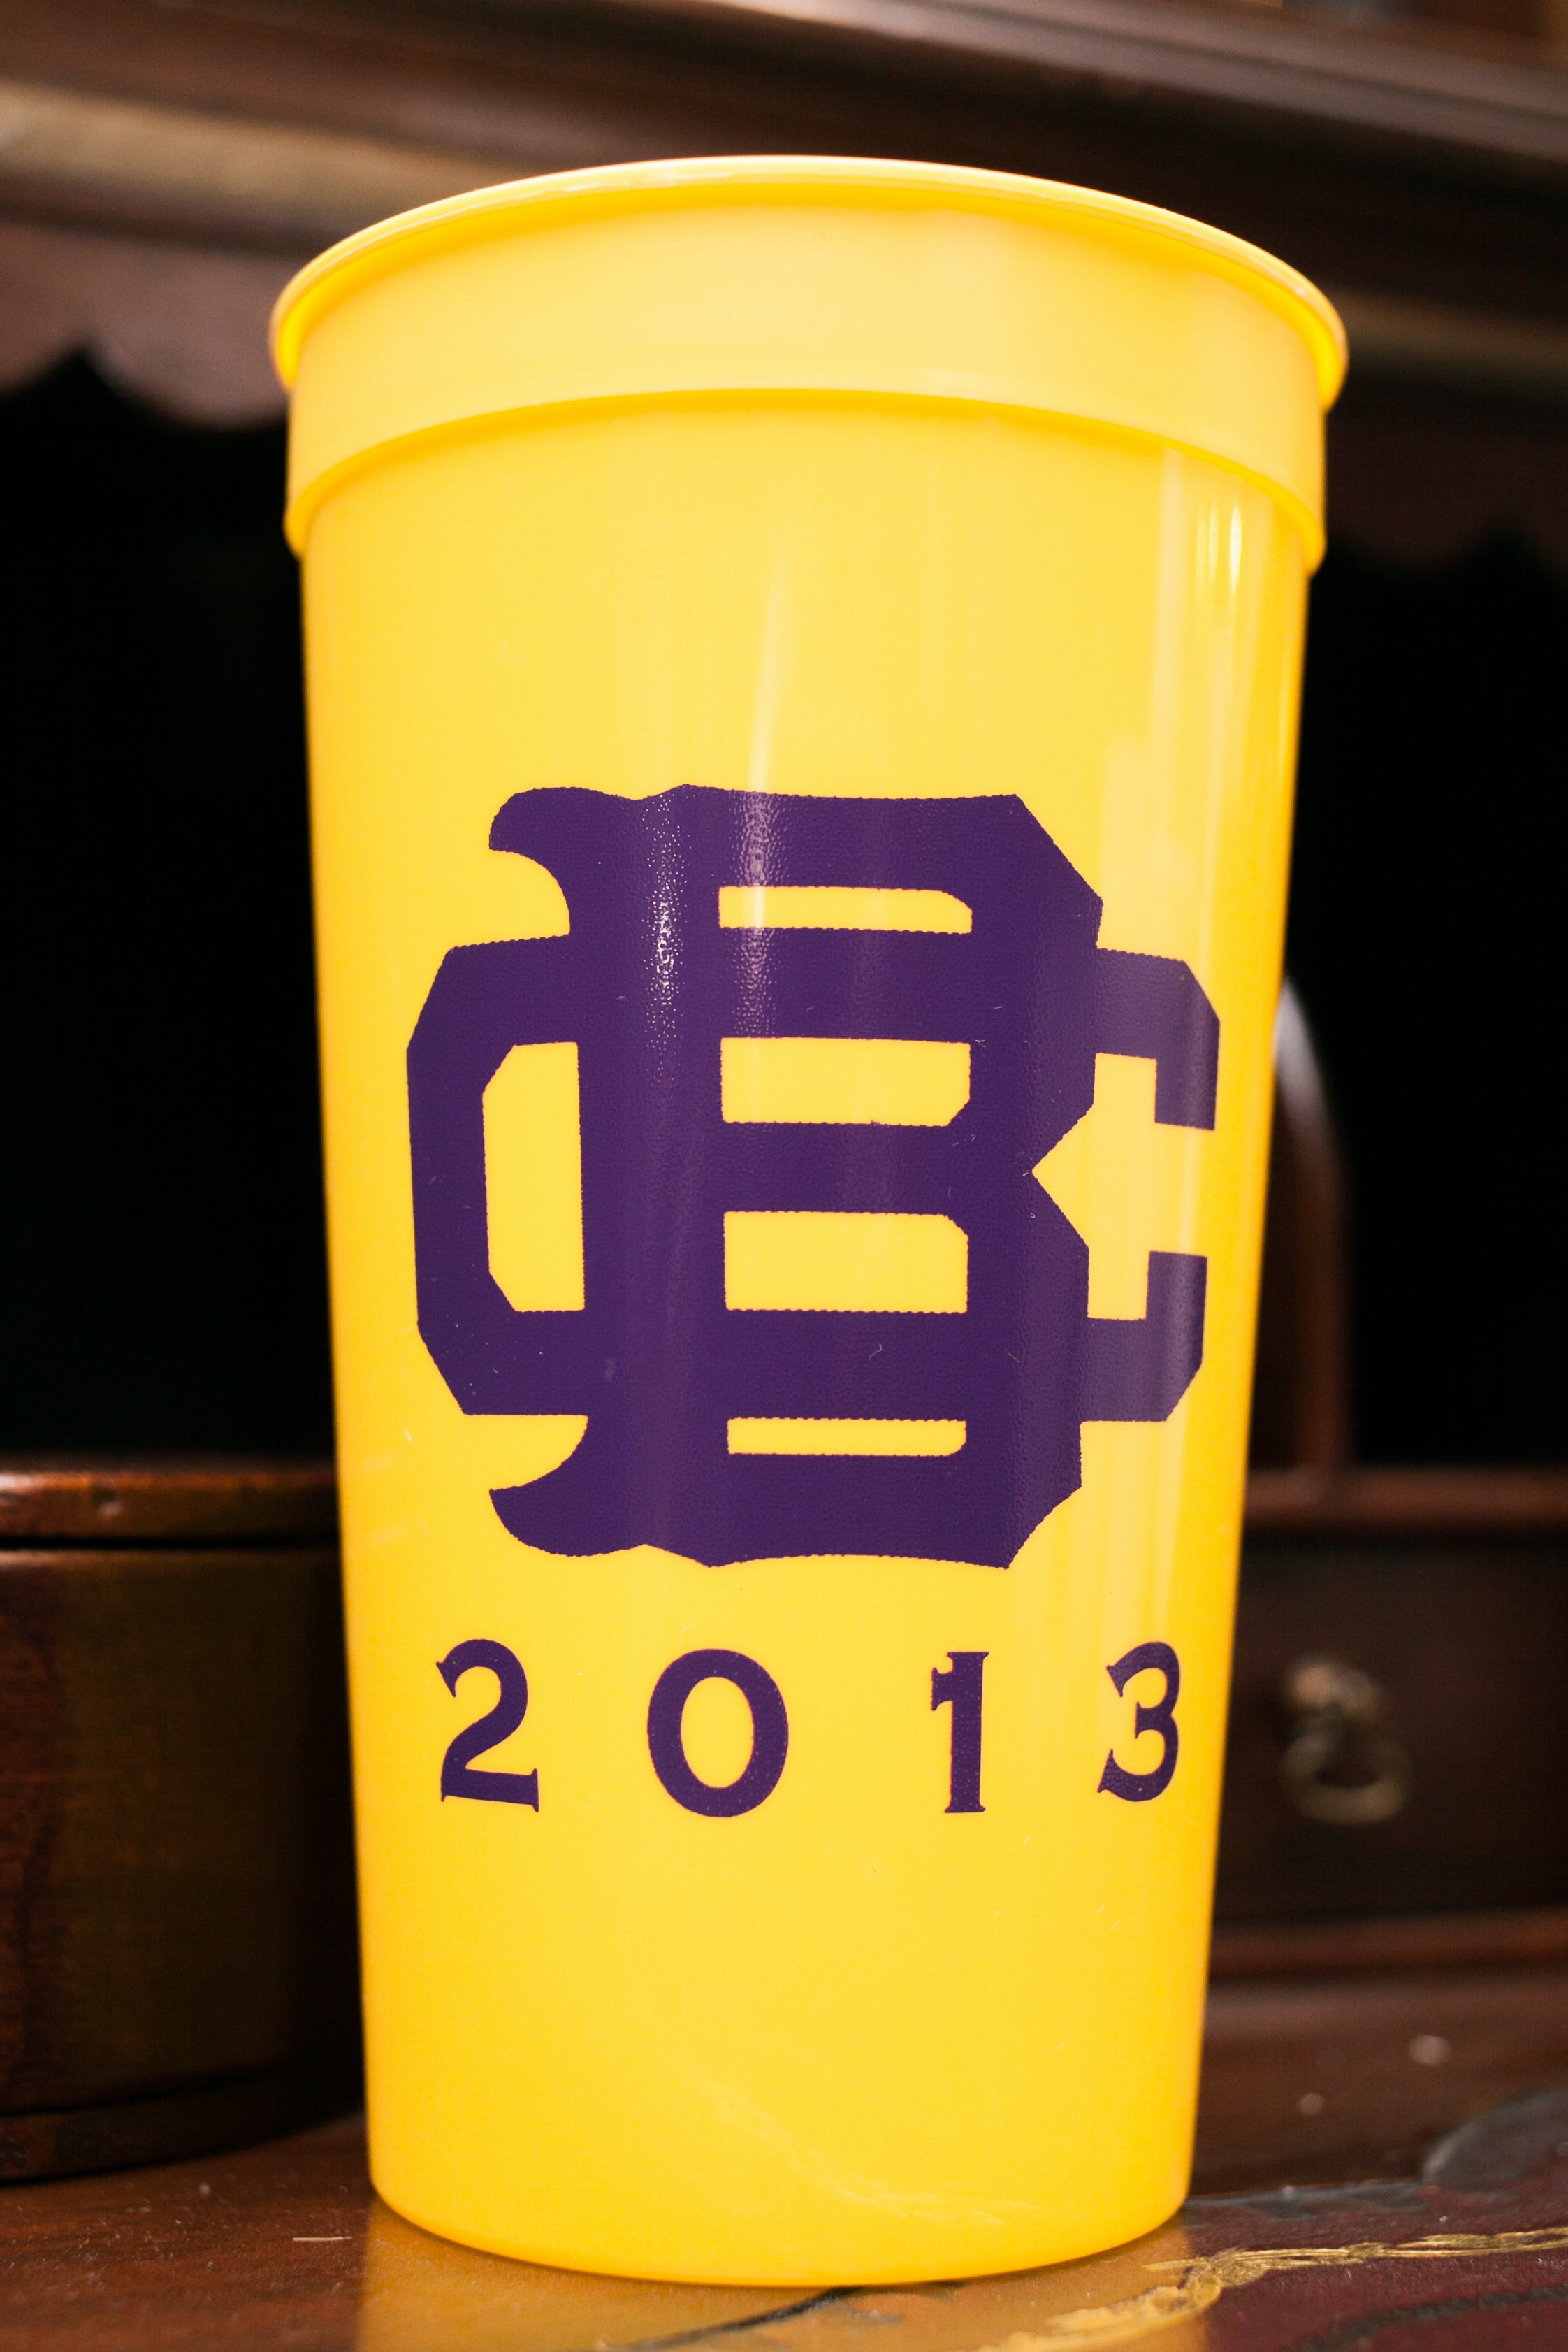 32 oz. Custom Disposable Sturdy Stadium Plastic Cups Disposable cup sold by Cup of Arms